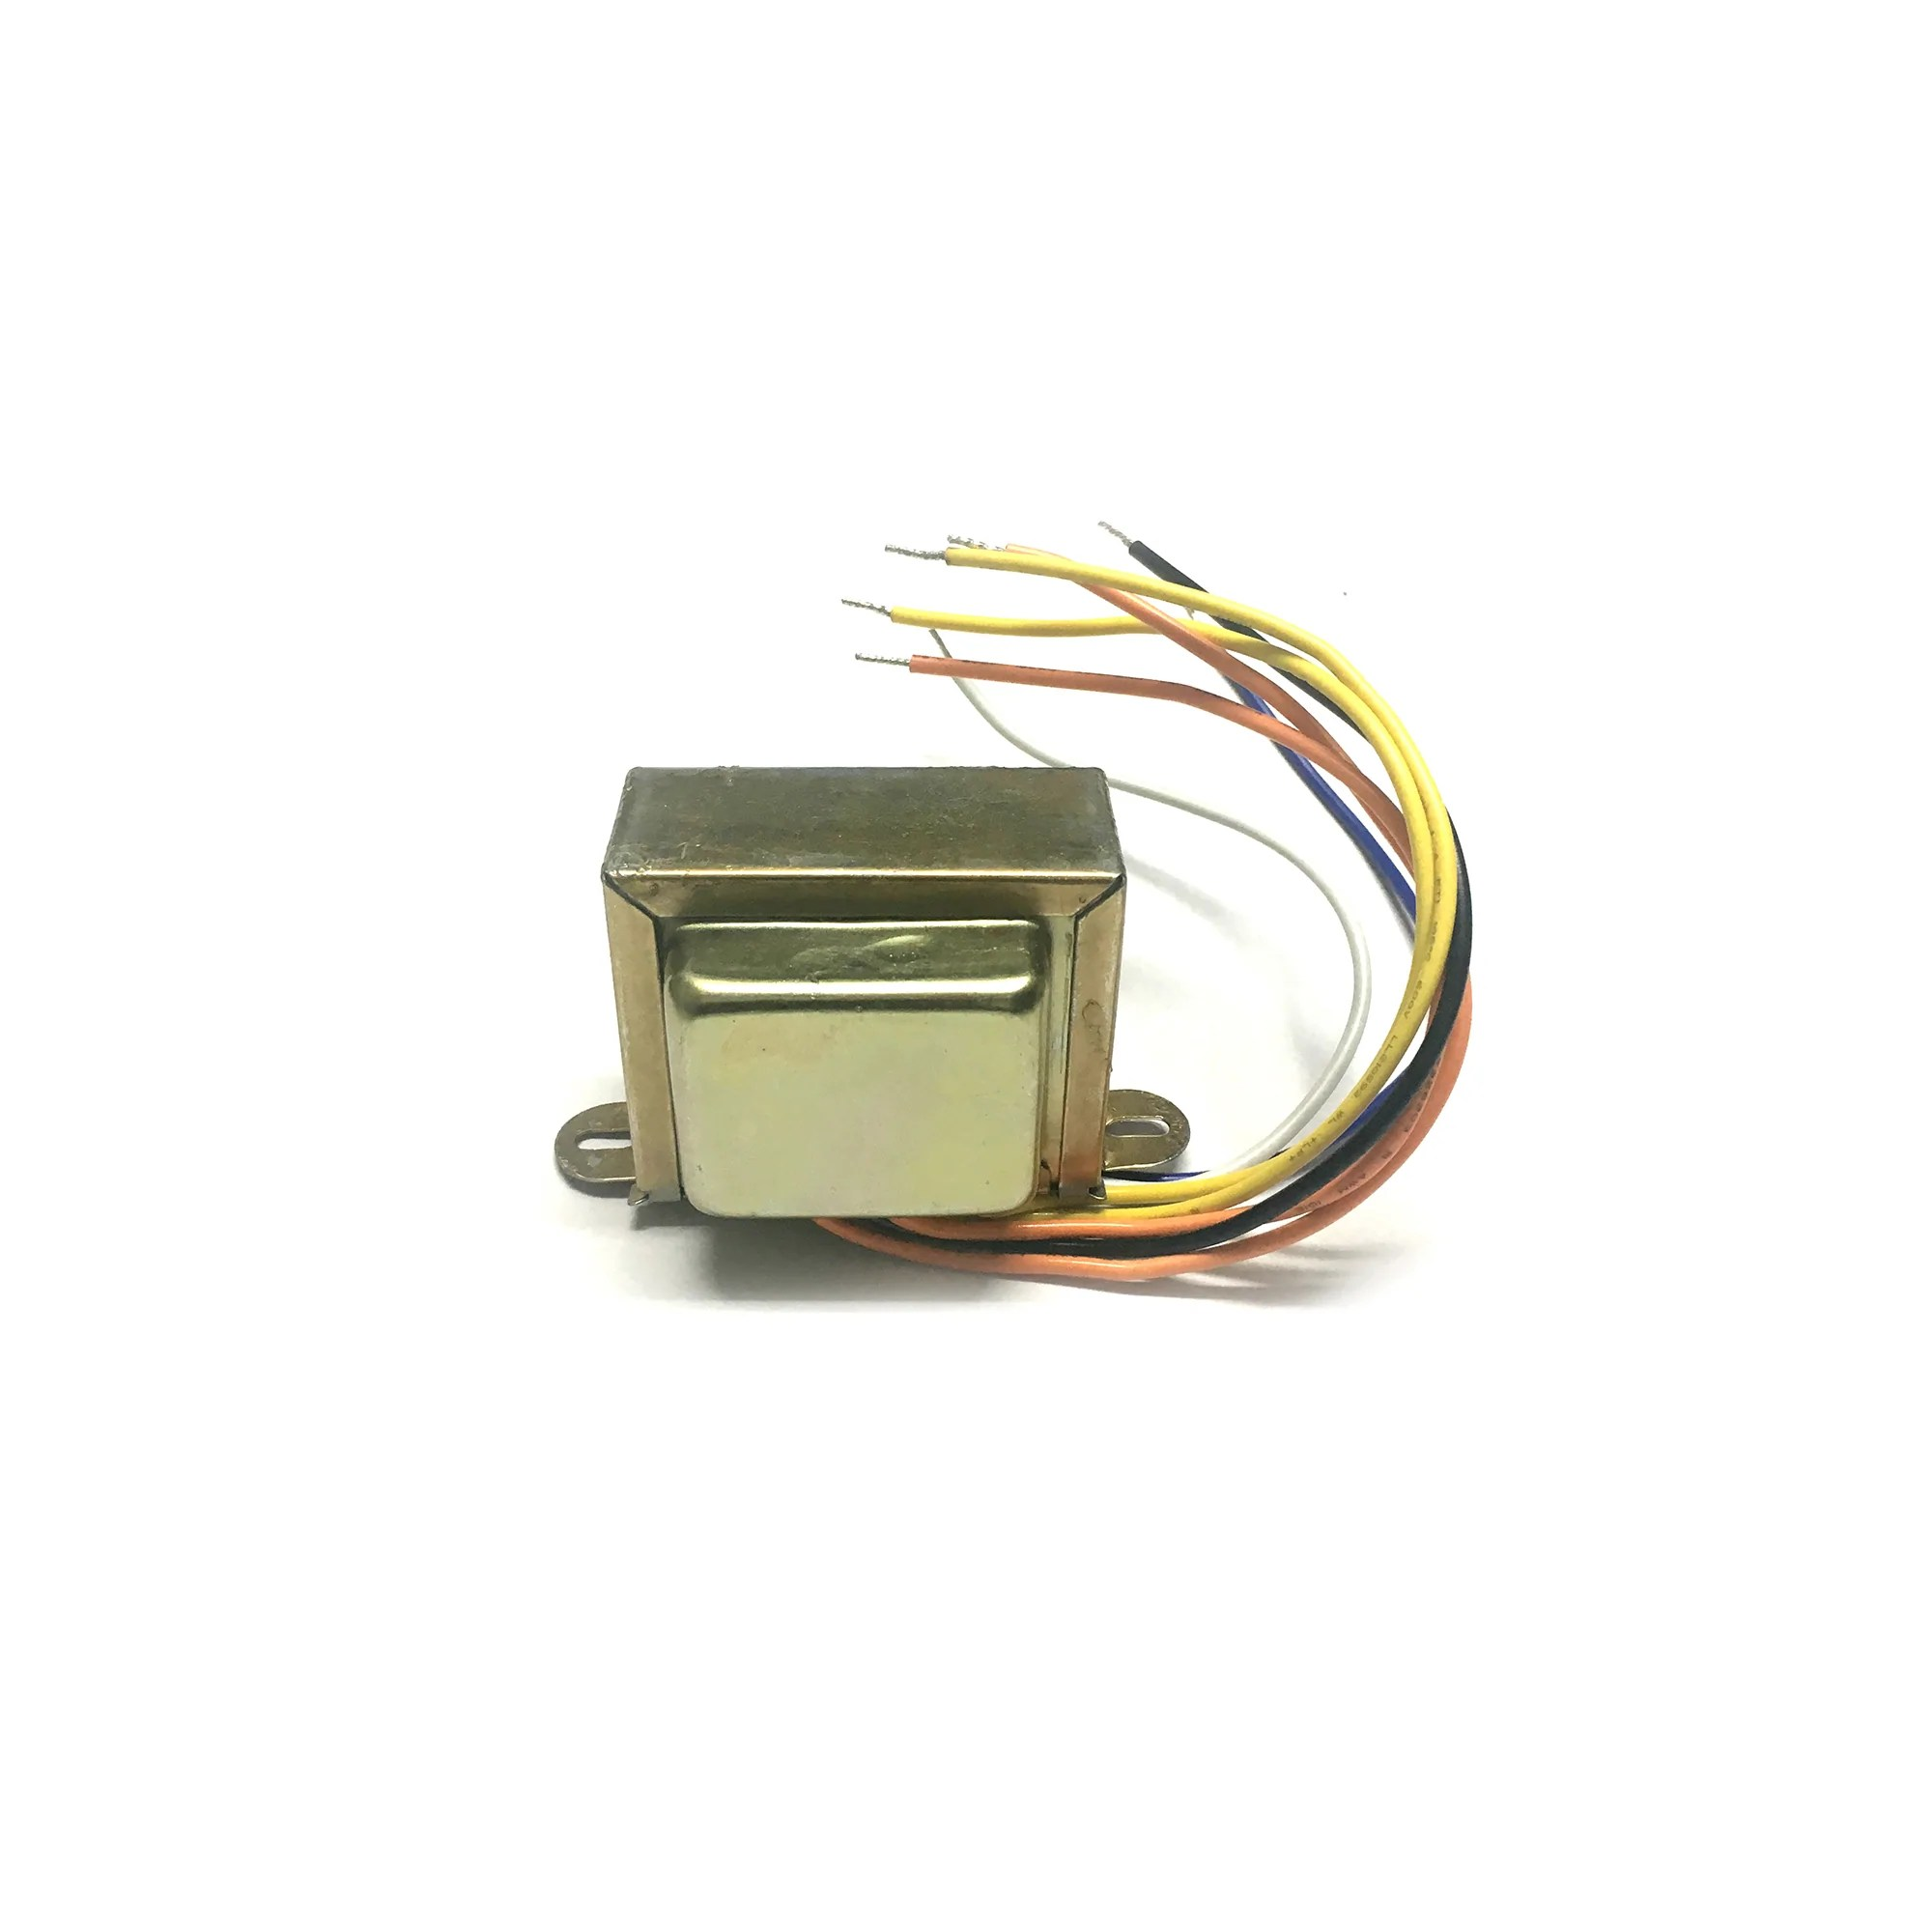 re 150 re 301 re 501 sre 555 240v power transformer replacement [ 2000 x 2000 Pixel ]